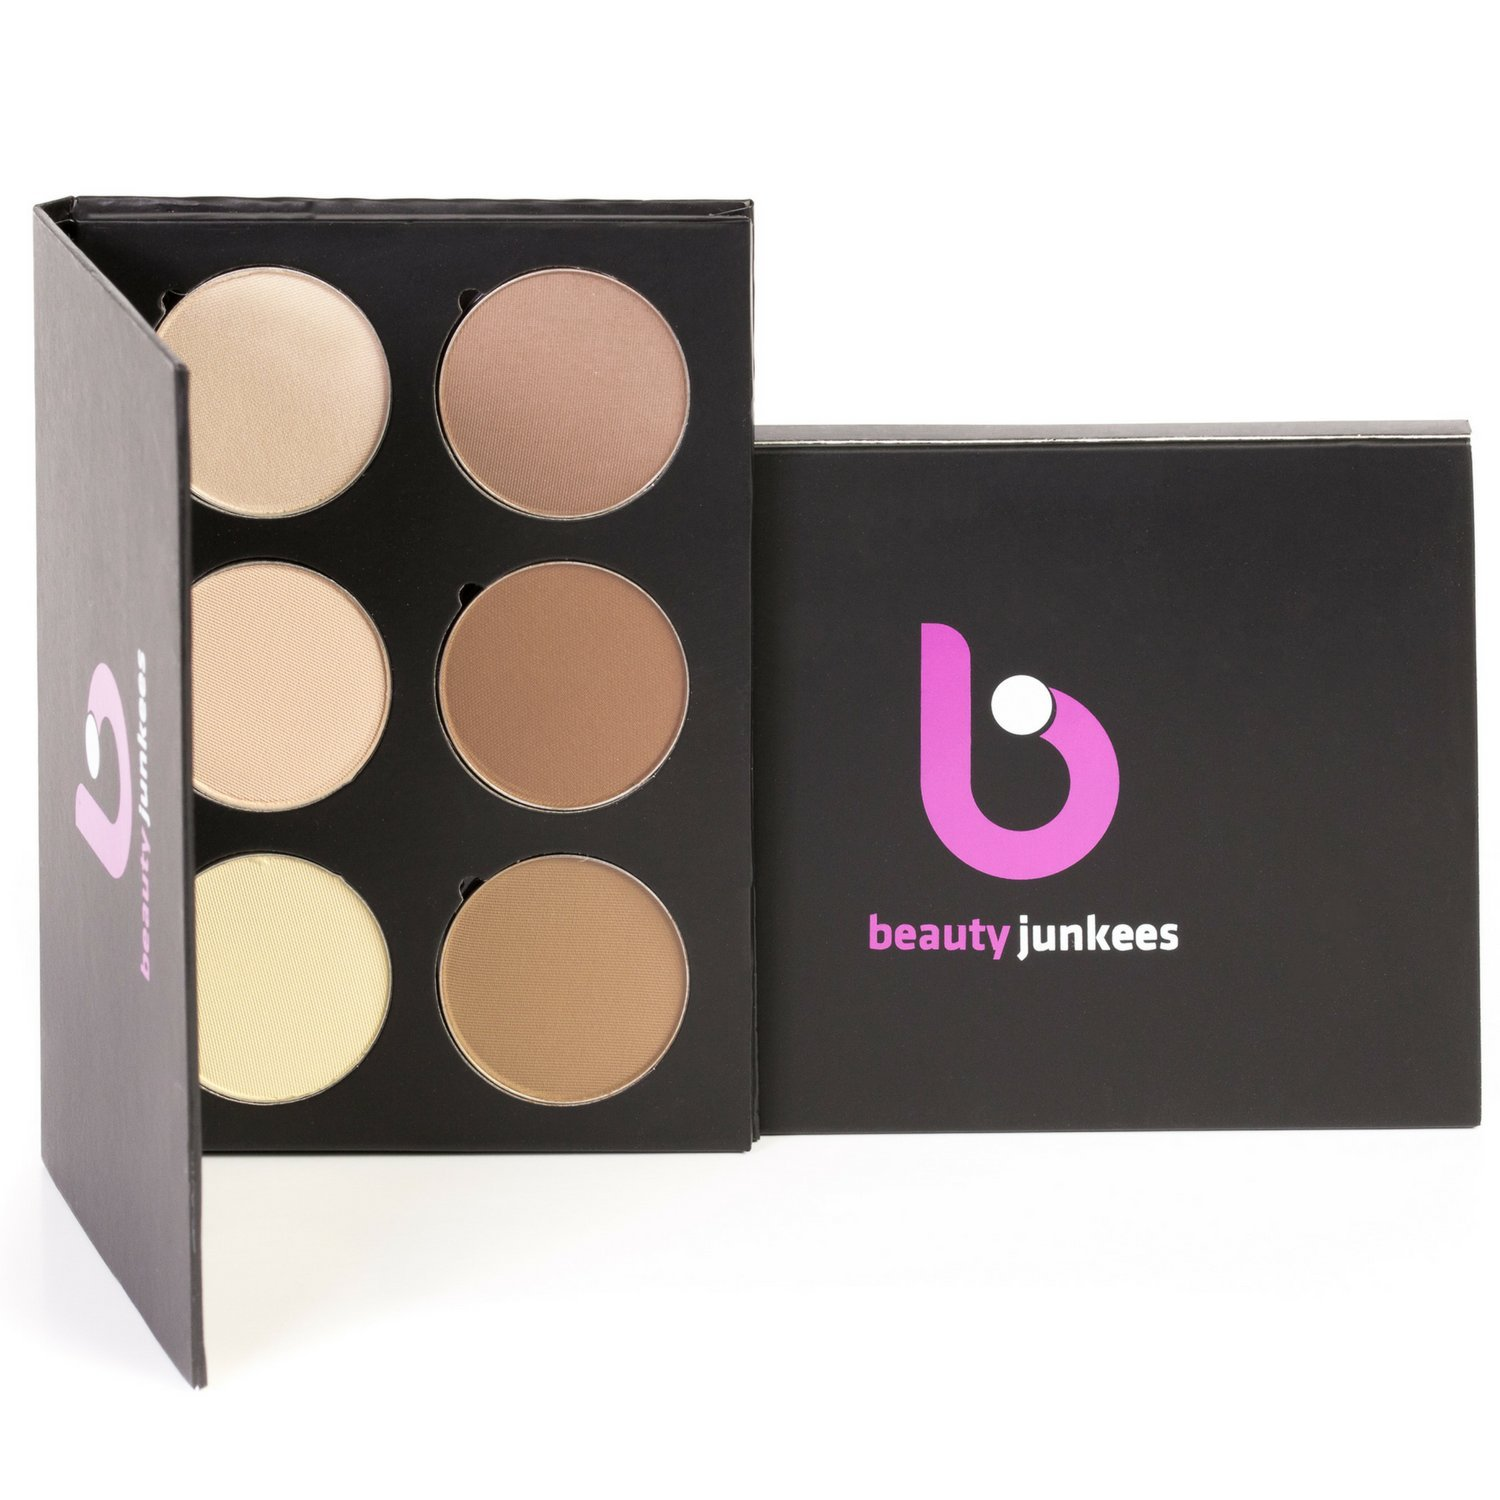 Powder Contour Highlight Makeup Palette – 6 Color Face Pallete Make Up Contouring Kit for Beginners, Concealer, Bronzer, Highlighter, Professional Quality, Paraben Gluten Cruelty Free Cosmetics